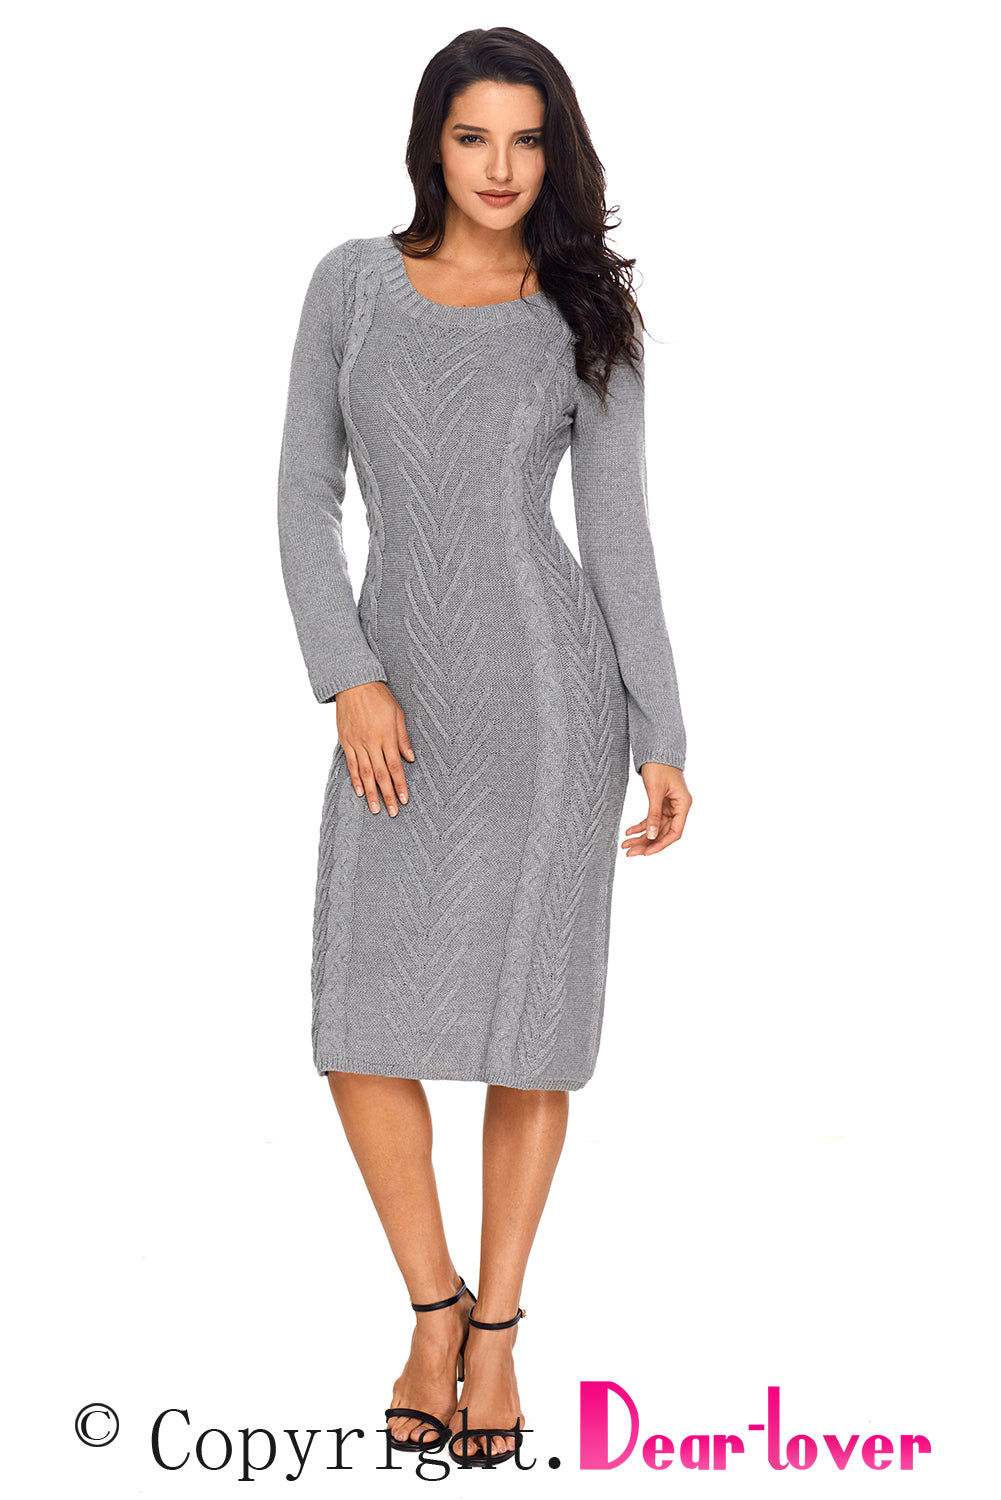 809d73a21cd Sexy Gray Women s Hand Knitted Sweater Dress – SexyAffordableClothing